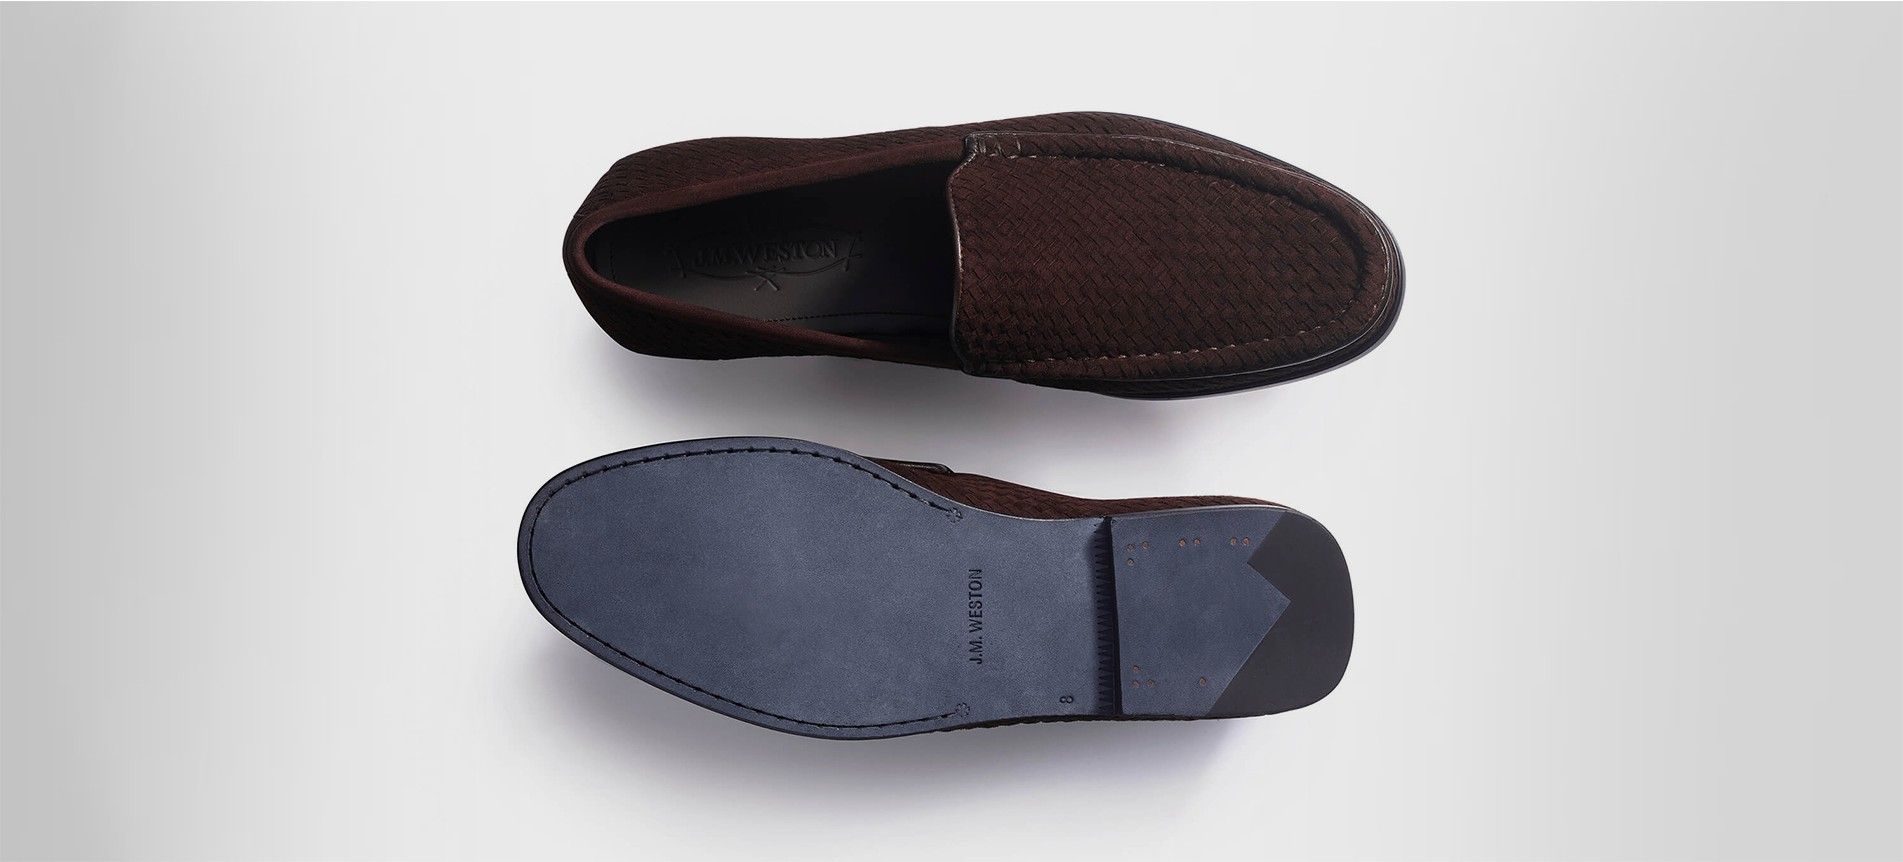 Woven Soft Loafer Calvi Woven Leather